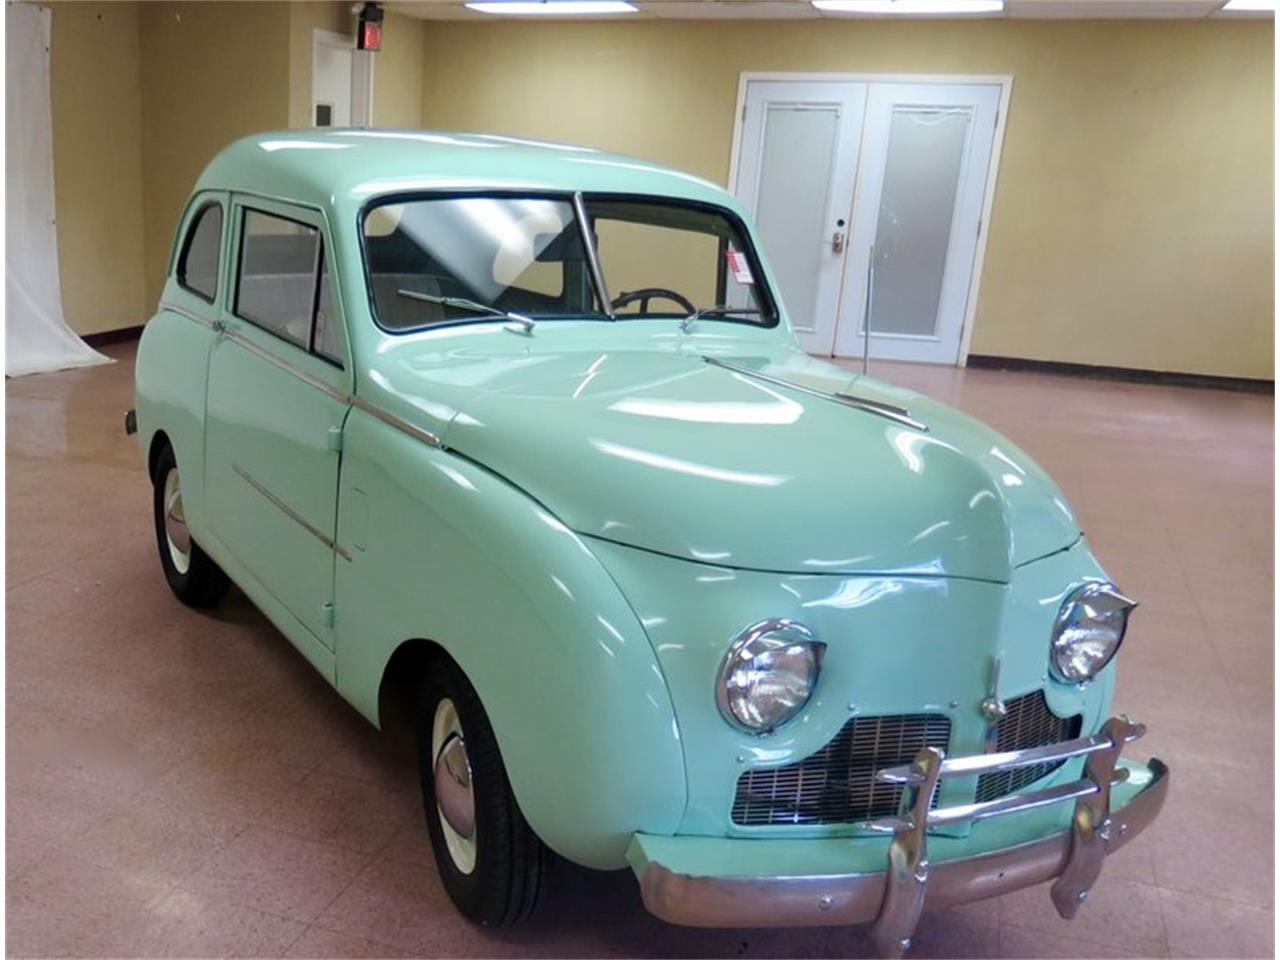 Large Picture of 1947 Crosley Coupe - $12,000.00 - FHX5